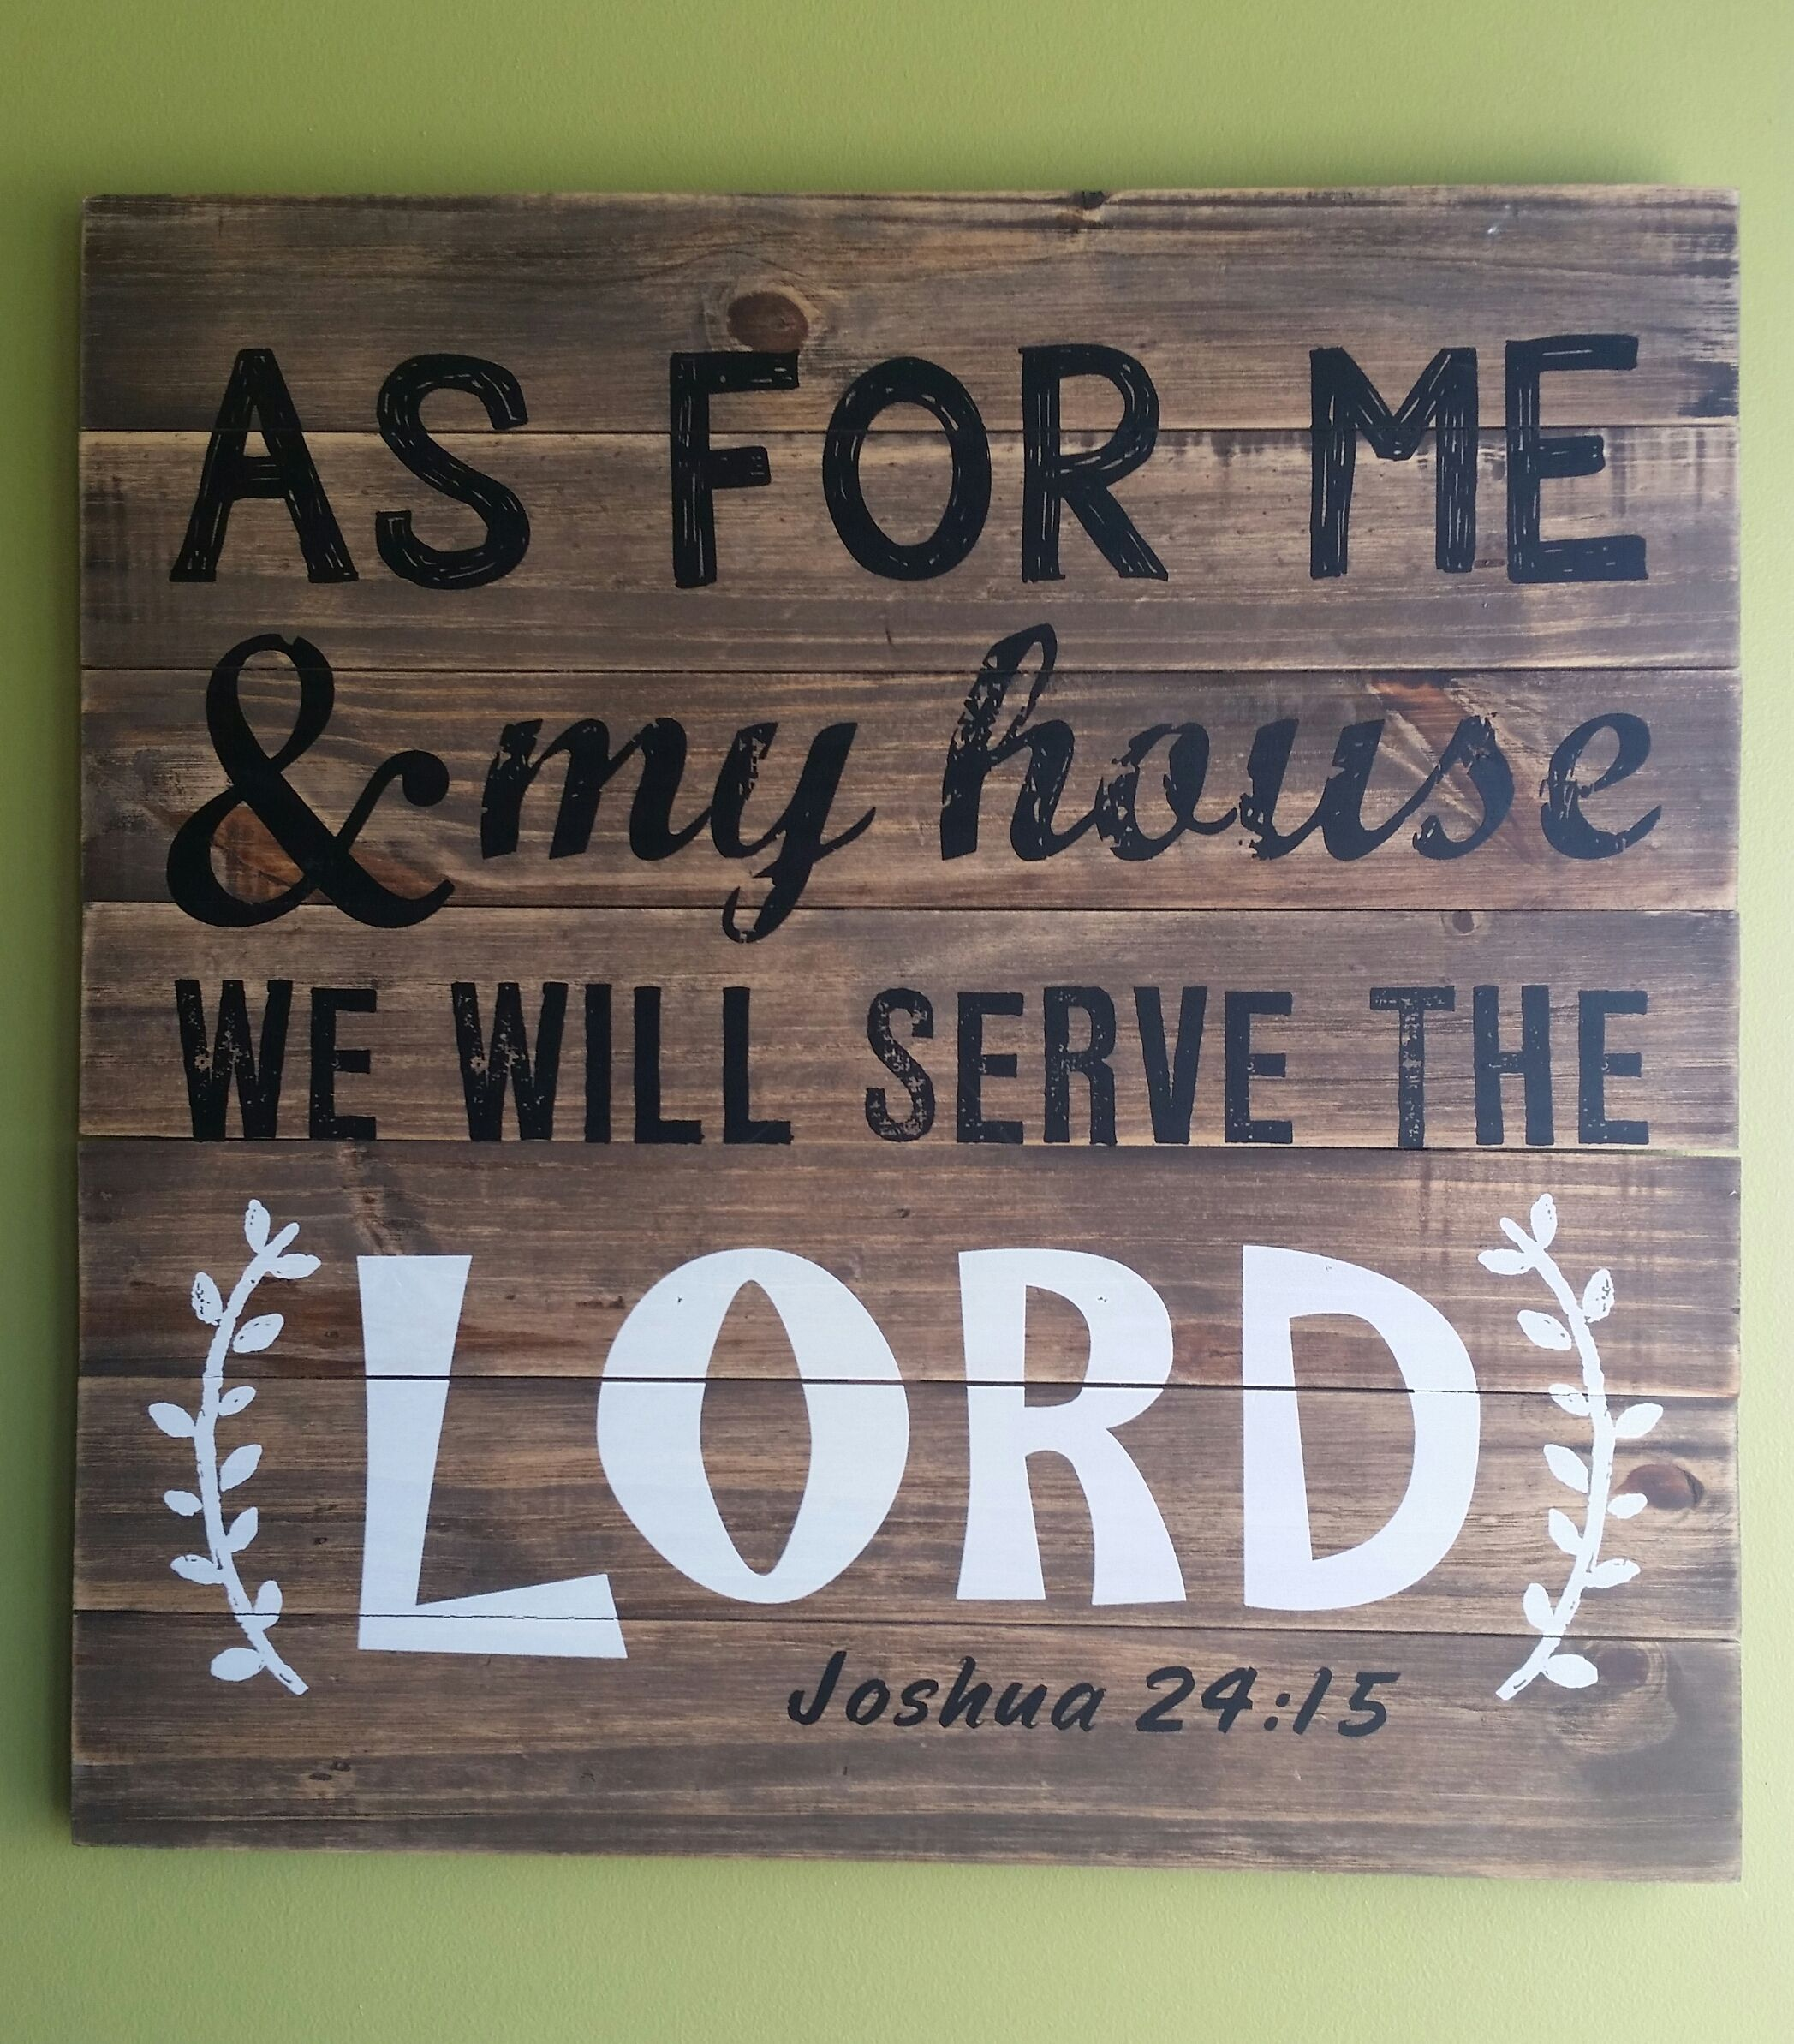 My Home 24 Hobby Lobby, Joshua 24:15, As For Me And My House We Will Serve The Lord | Serve The Lord, Lord, Thats Not My